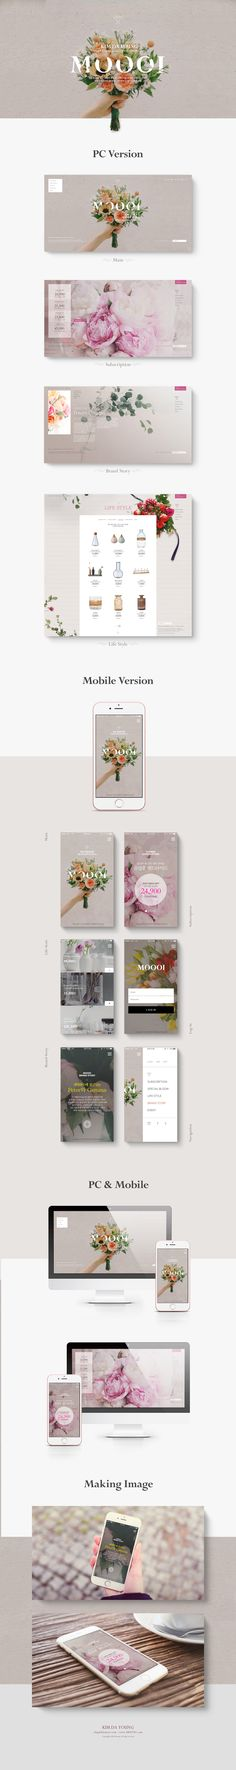 욱스웹디자인아카데미-UKSWEB Design Academy on Behance